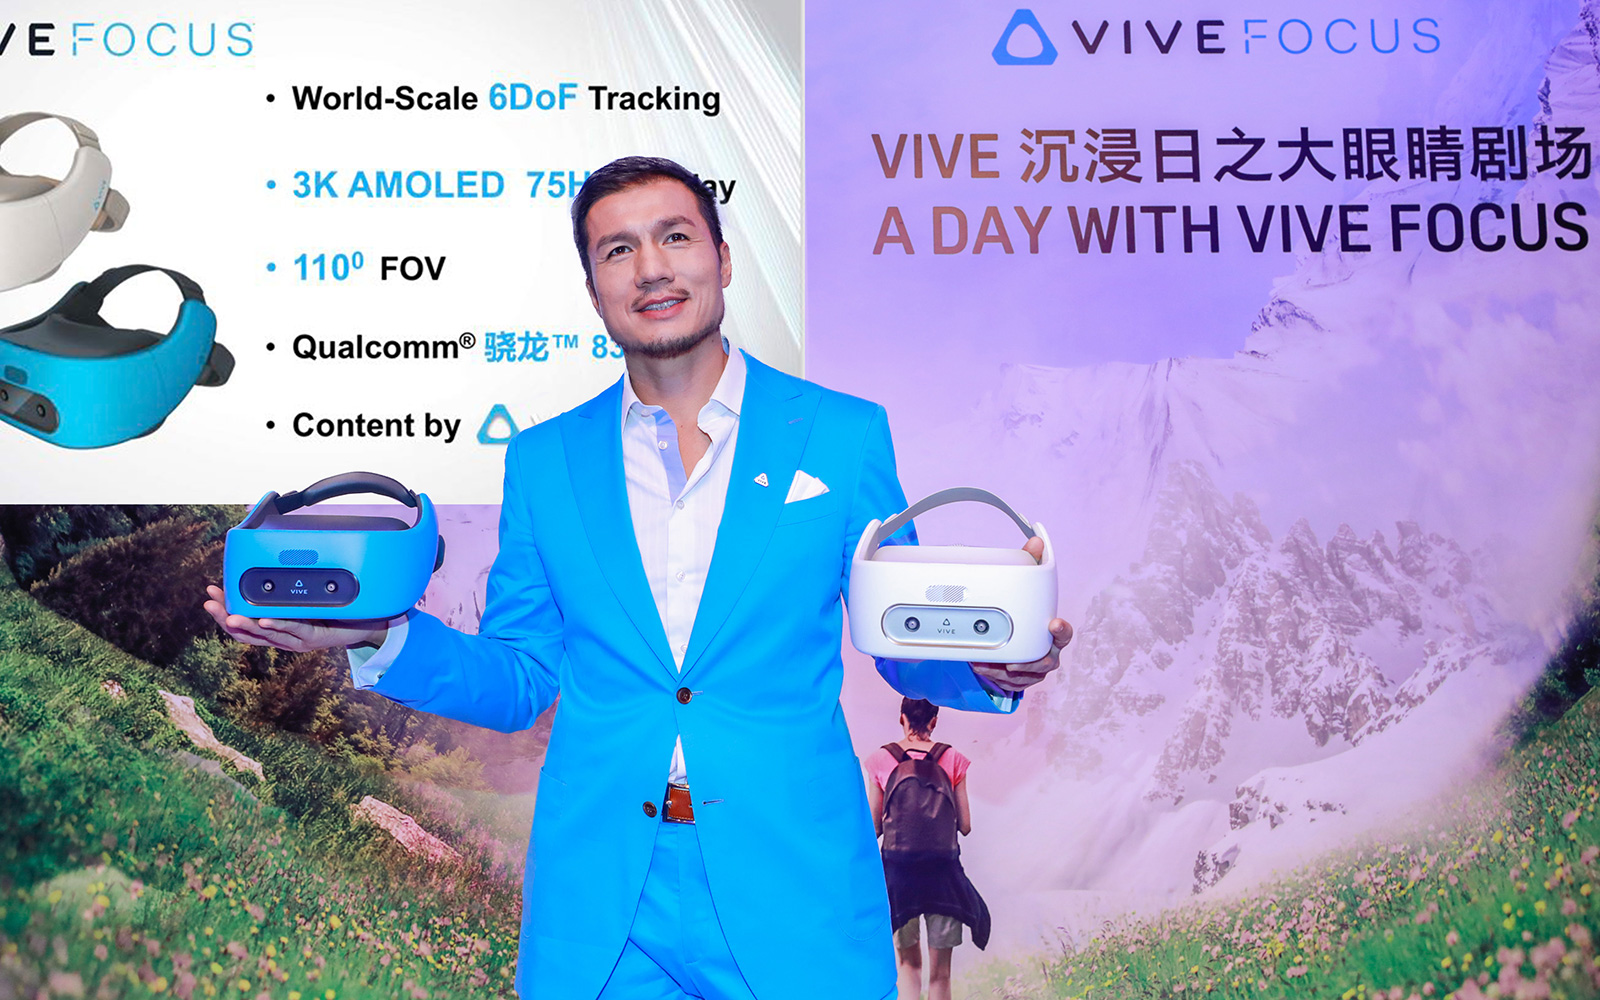 HTCs standalone Vive Focus launches